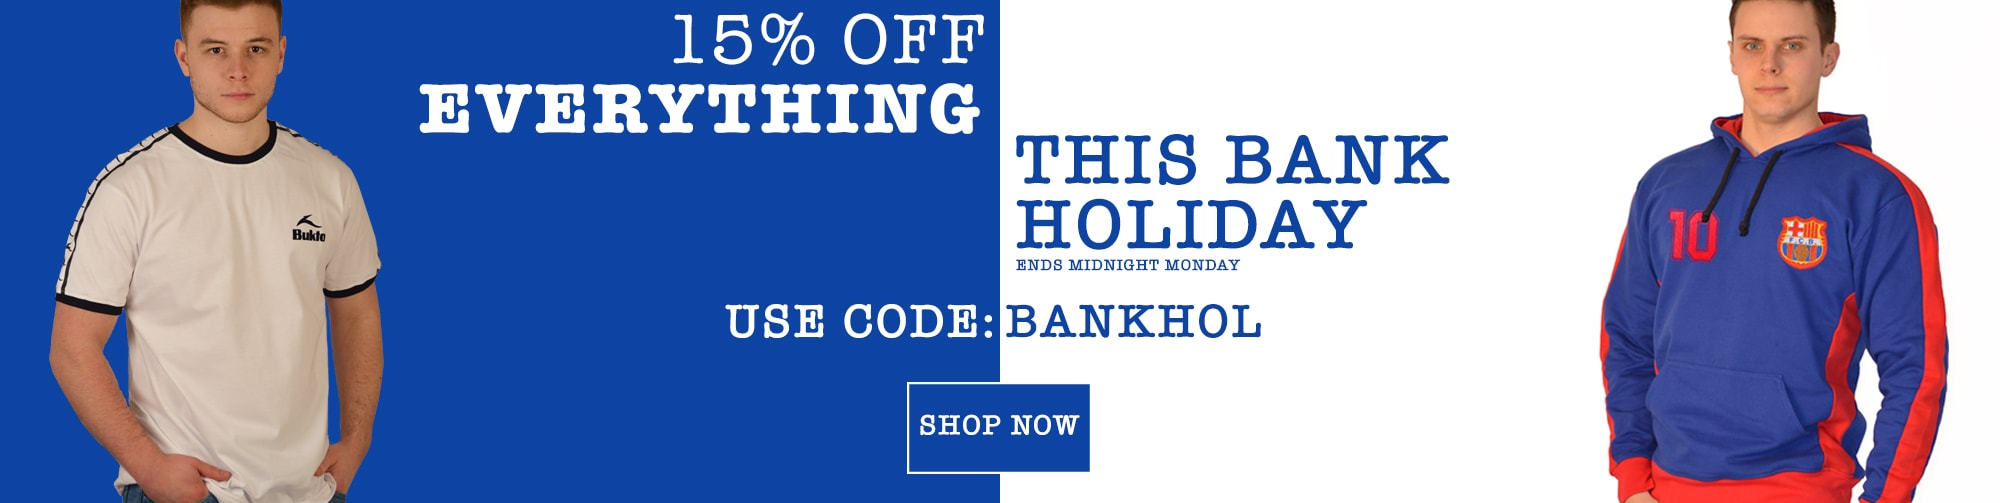 Toffs Toffs: Bank Holiday promotion 15% off everything